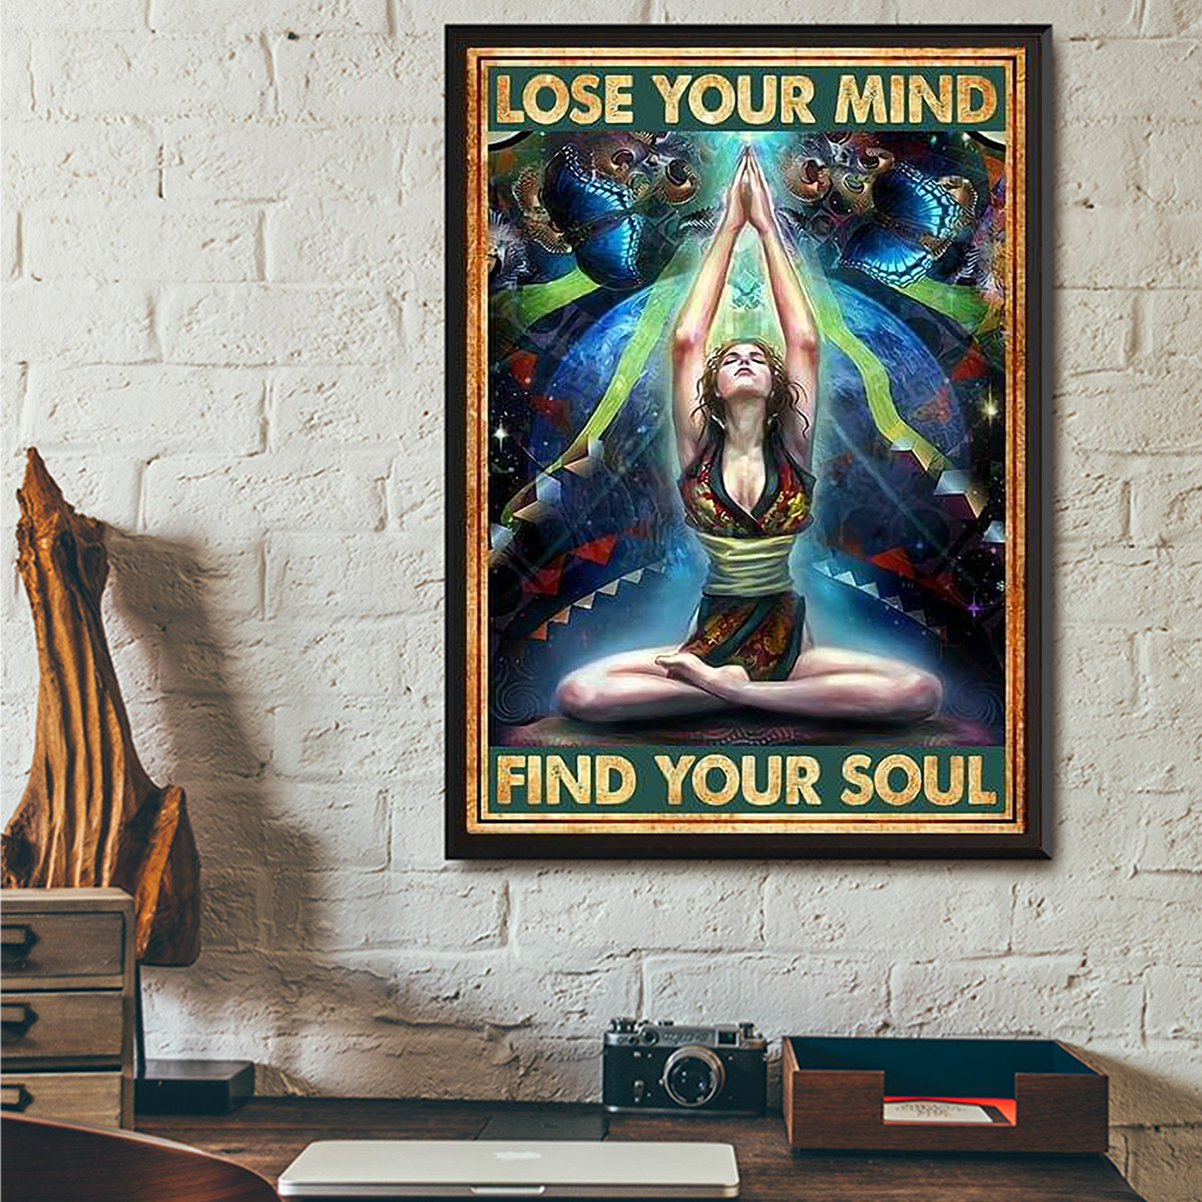 Yoga girl lose your mind find your soul poster A1